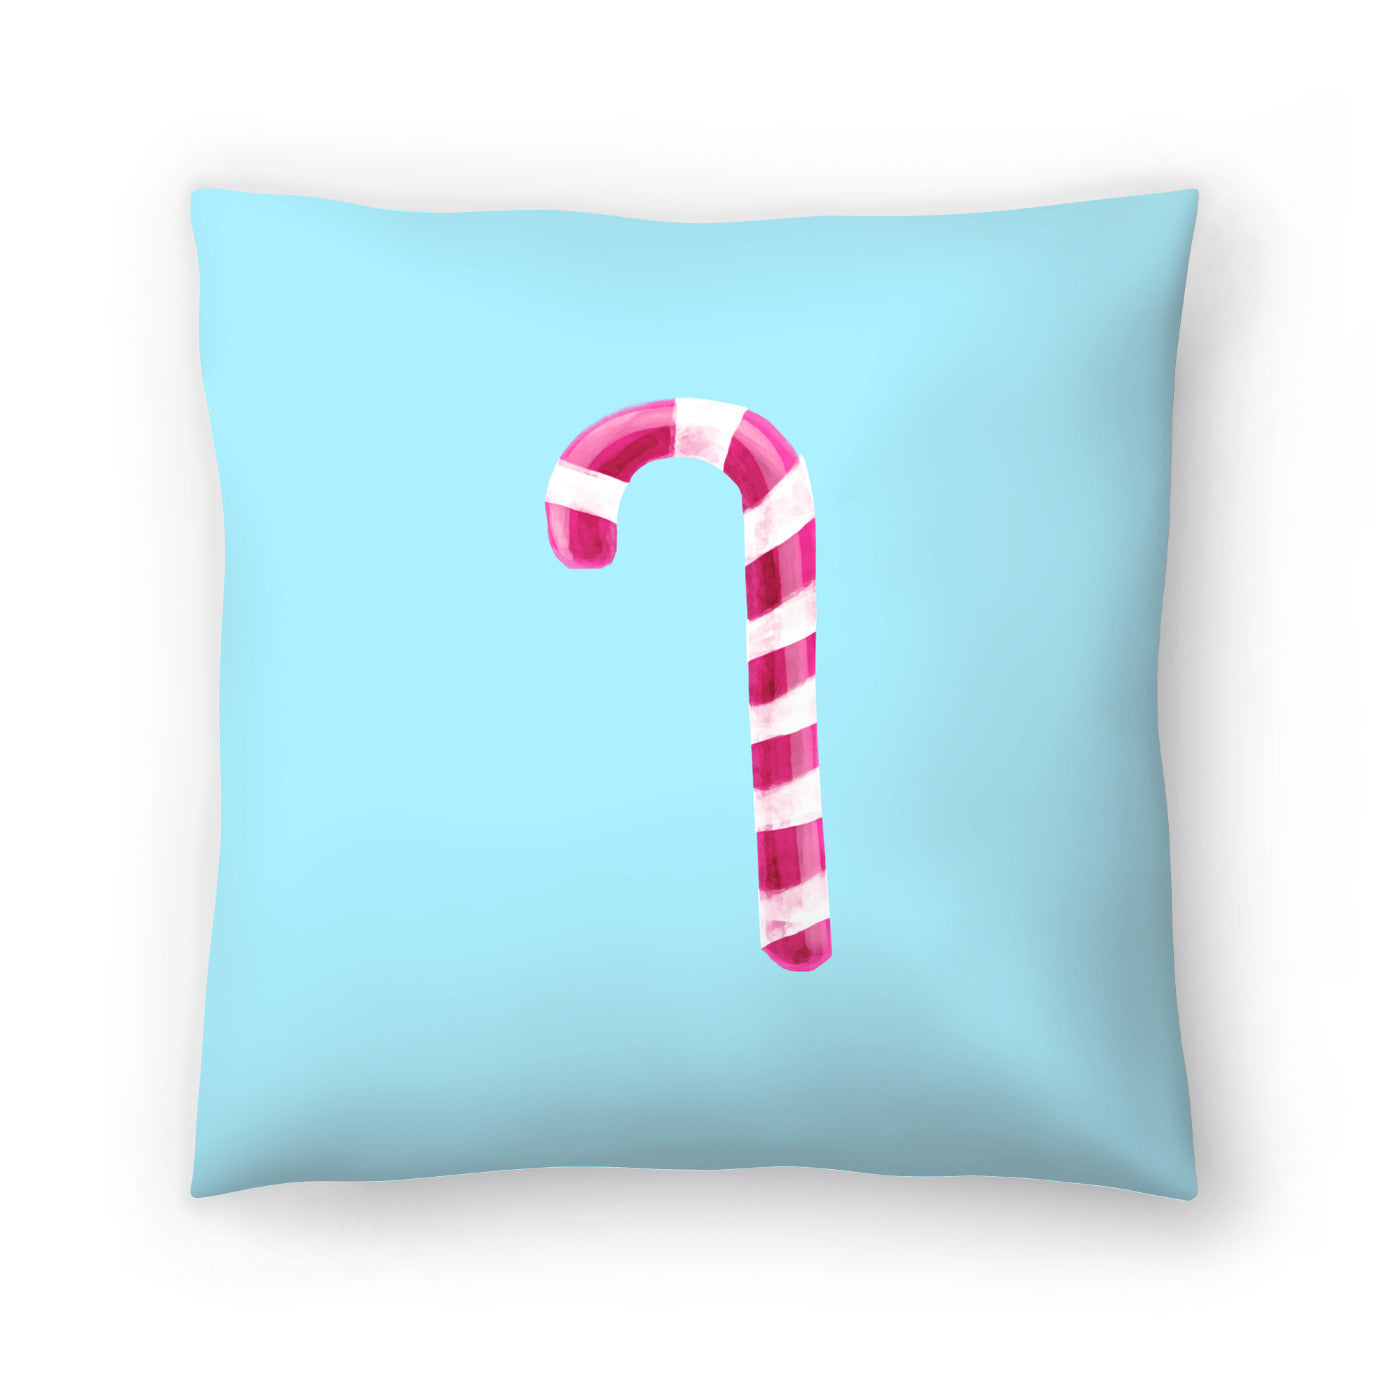 Candy Cane by Emanuela Carratoni Decorative Pillow - Decorative Pillow - Americanflat